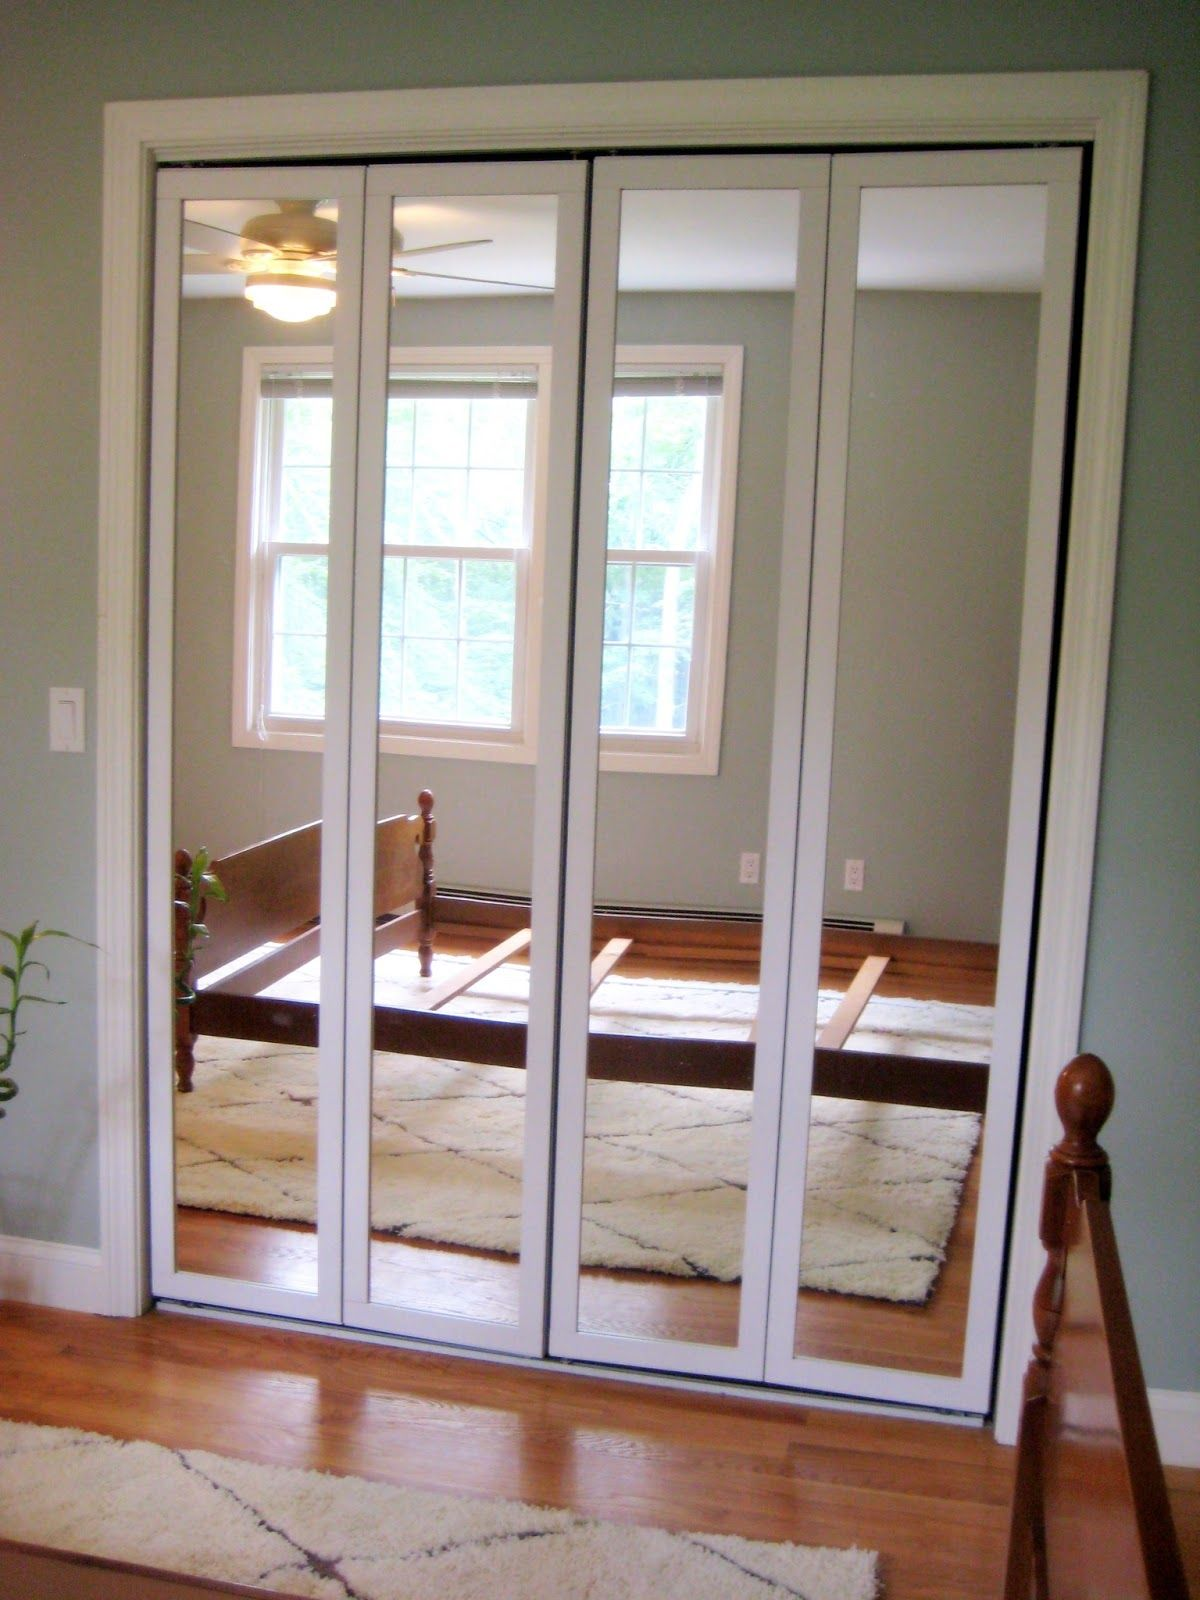 Bifold Door Alternatives A Homeowners Touch Updating Bi Fold Mirrored Doors Del Mar